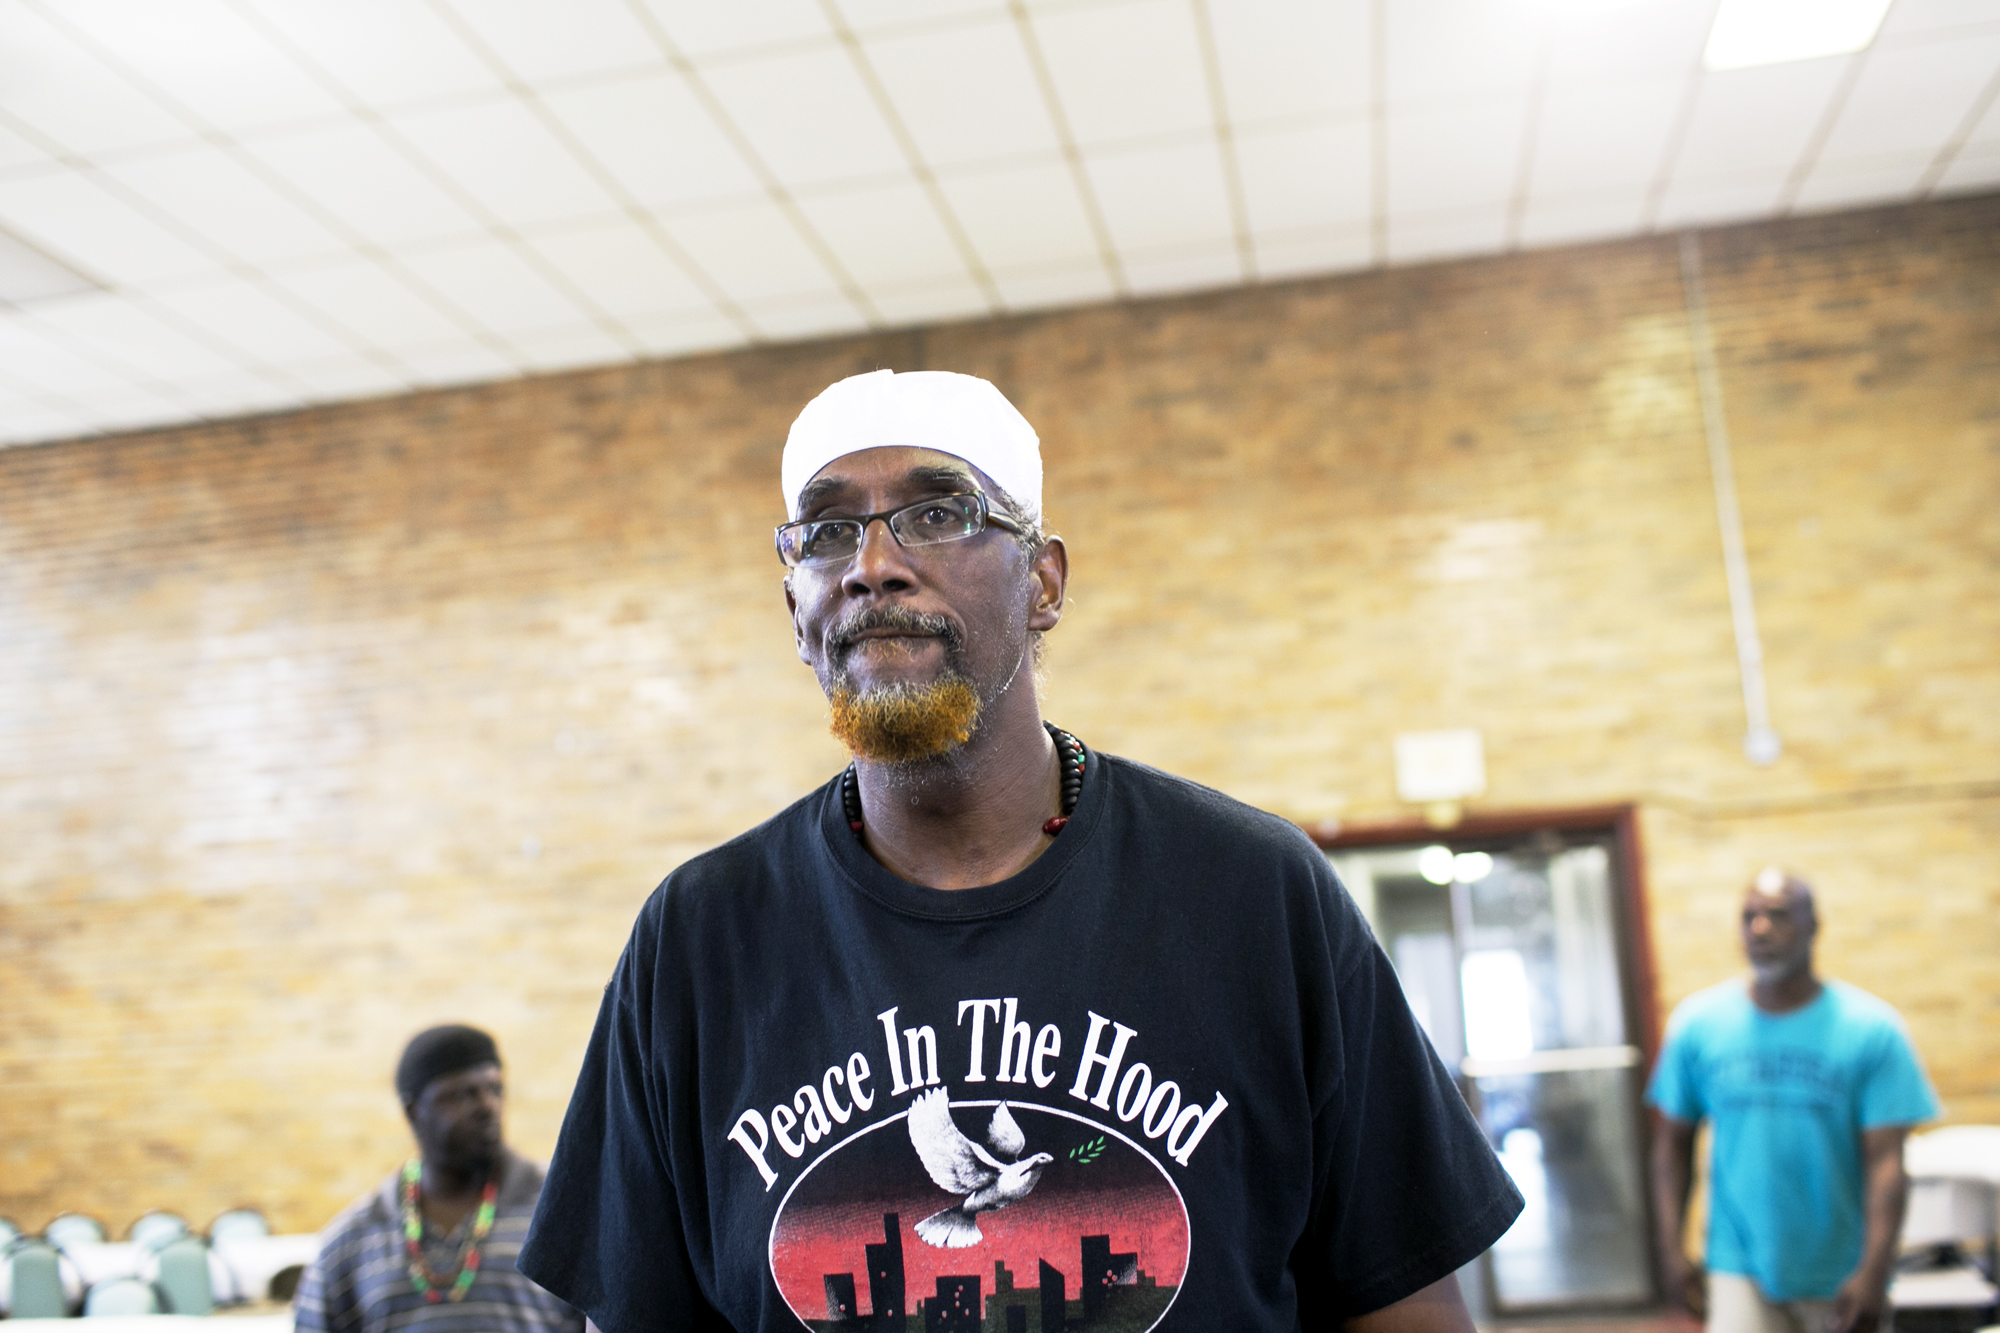 Khalid Samad stands in Masonic Hall in Cleveland, OH on Tuesday, July 19, 2016. Samad is a founder of Peace in the Hood, a youth violence, prevention, intervention and educational program that promotes personal responsibility, empowerment and self-sufficiency.